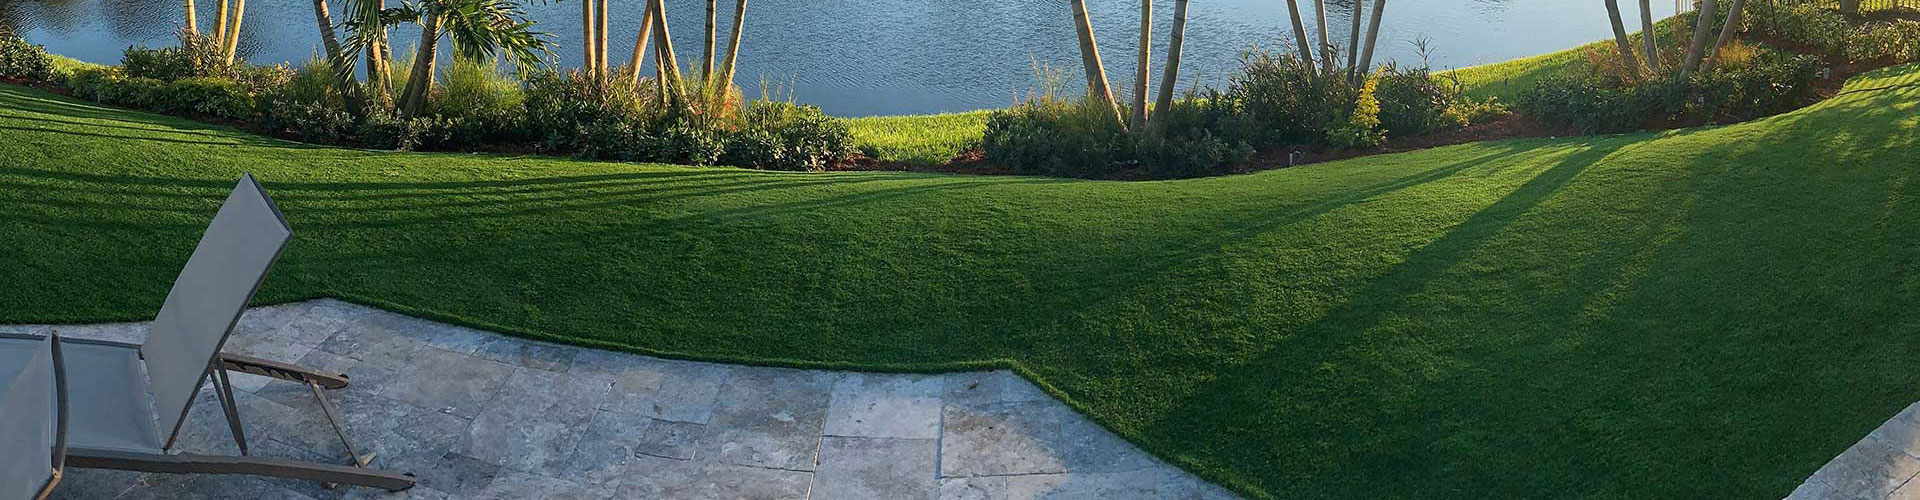 Fort Lauderdale Artificial Grass Installation, Putting Greens Installation and Synthetic Turf Installation